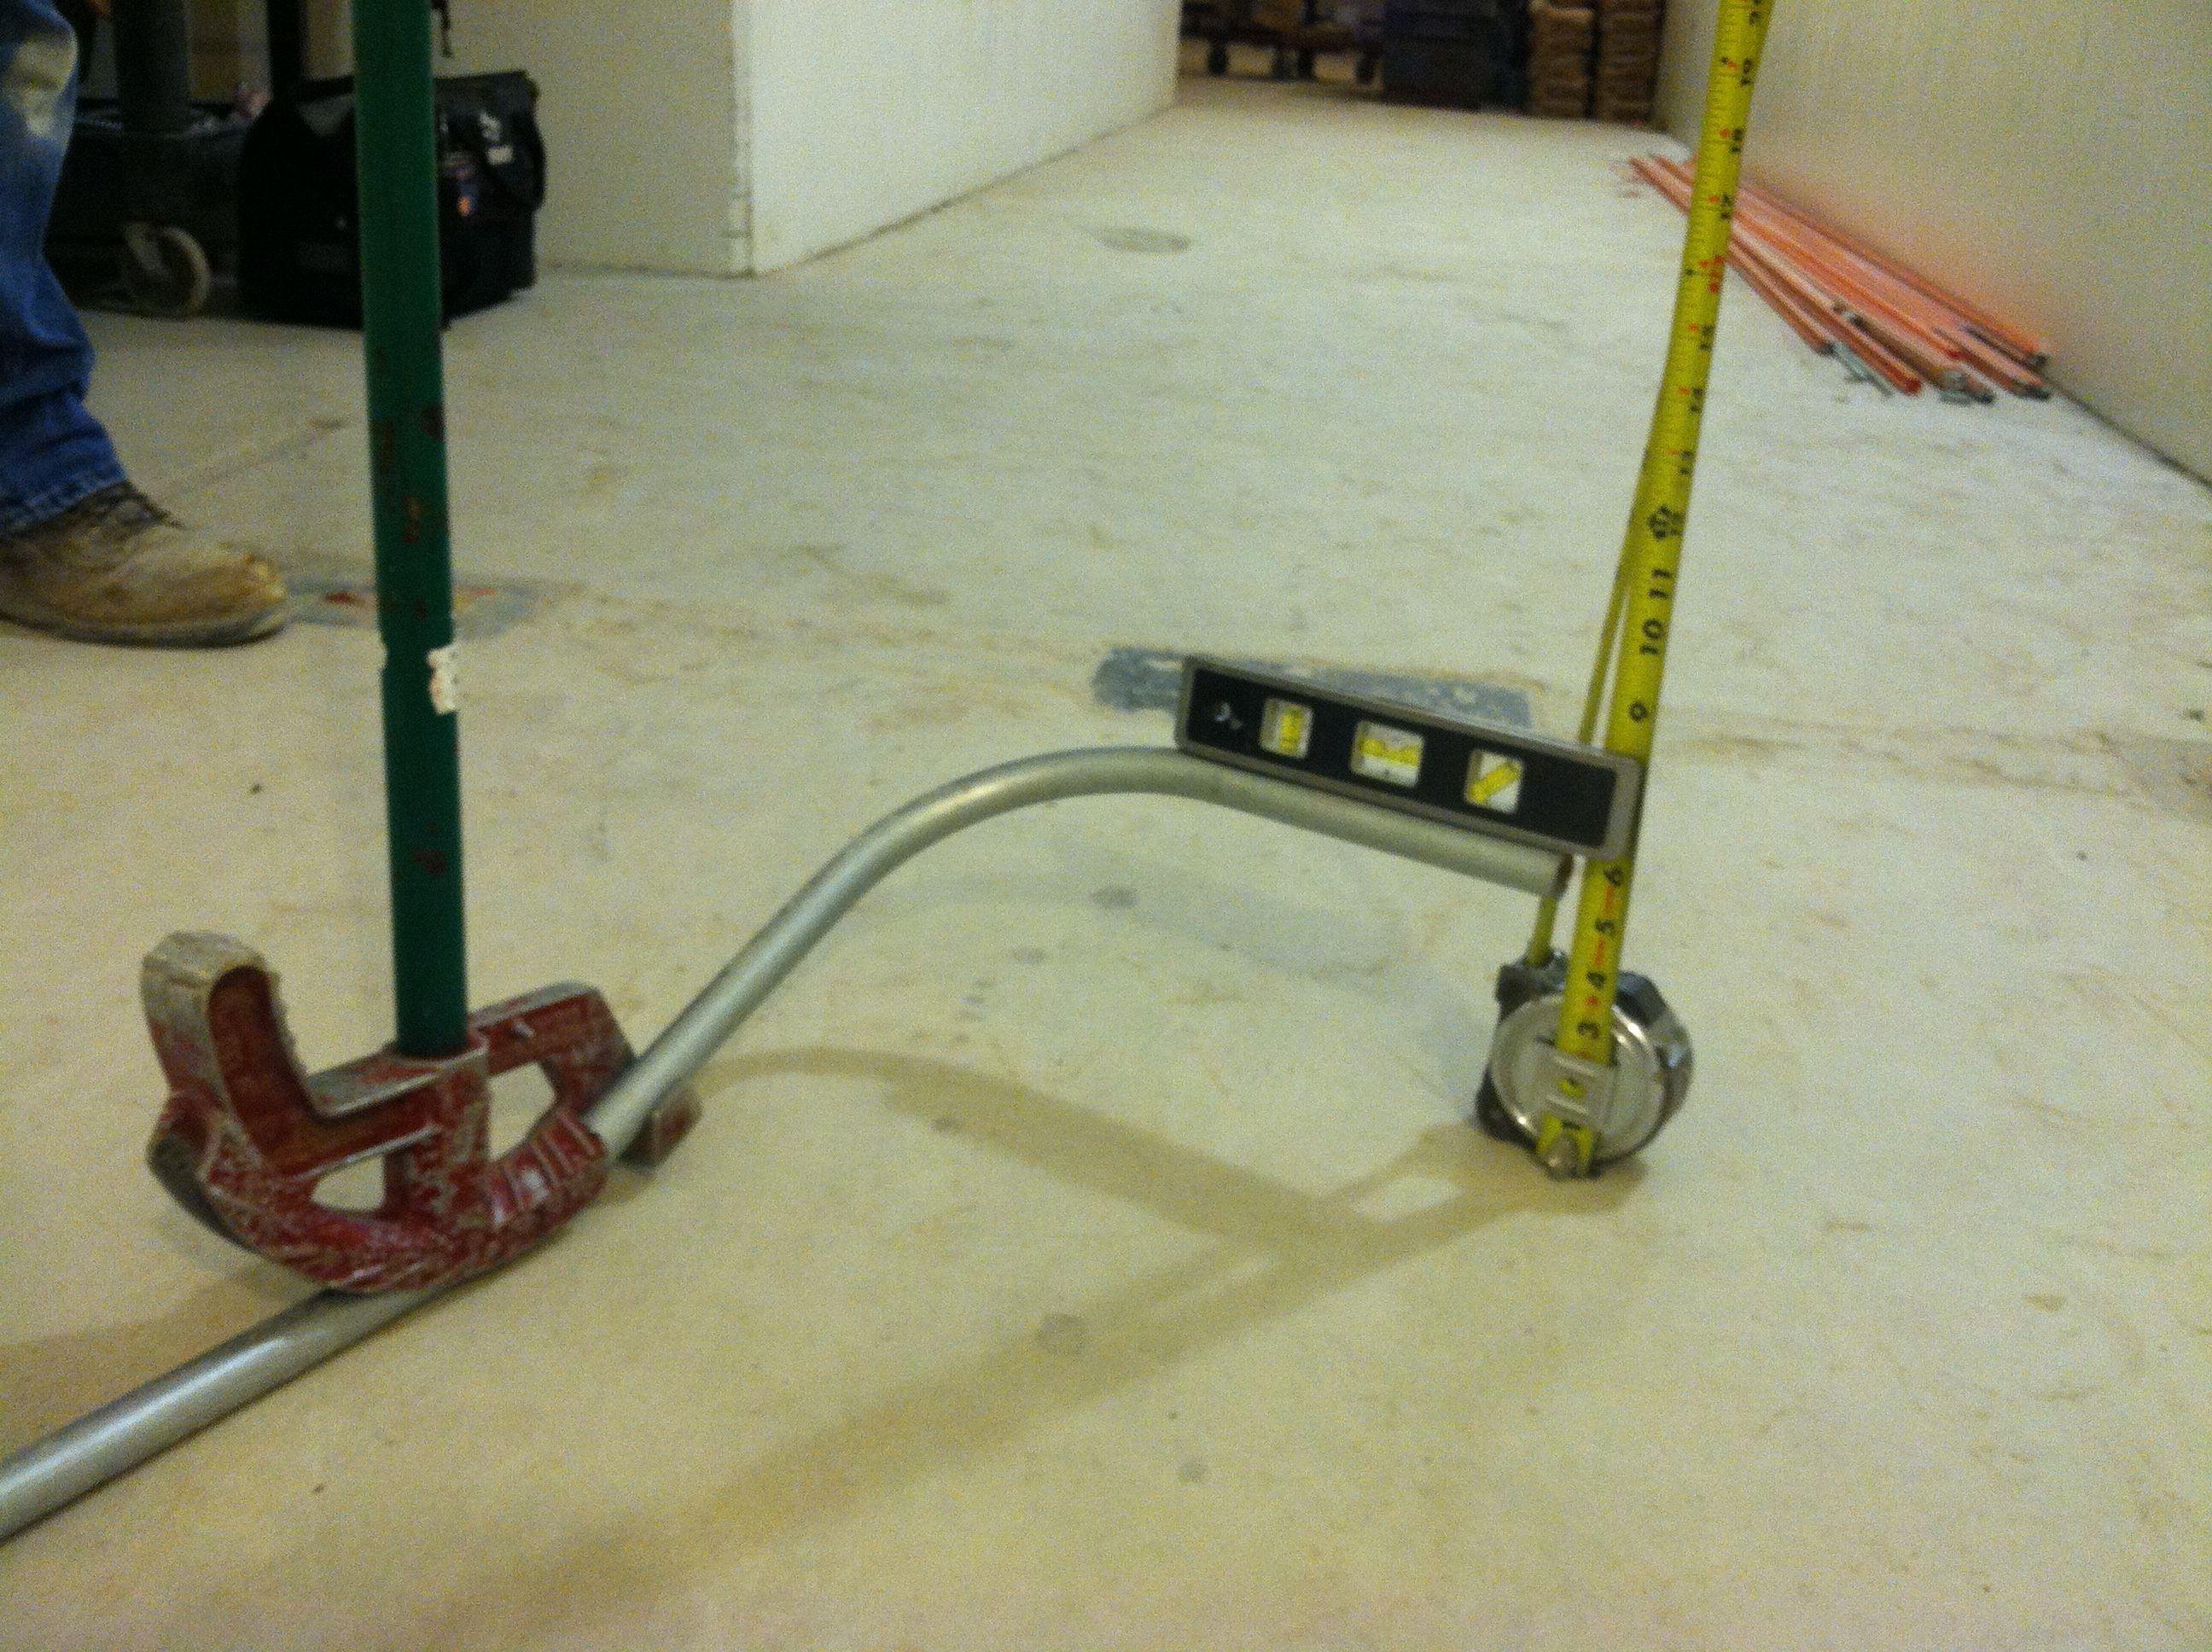 A Trick To Help Electricians Measure A Kick When Bending Conduit By Themselves Electronicrepairbench Diy Electrical Electrician Tools Electrical Wiring